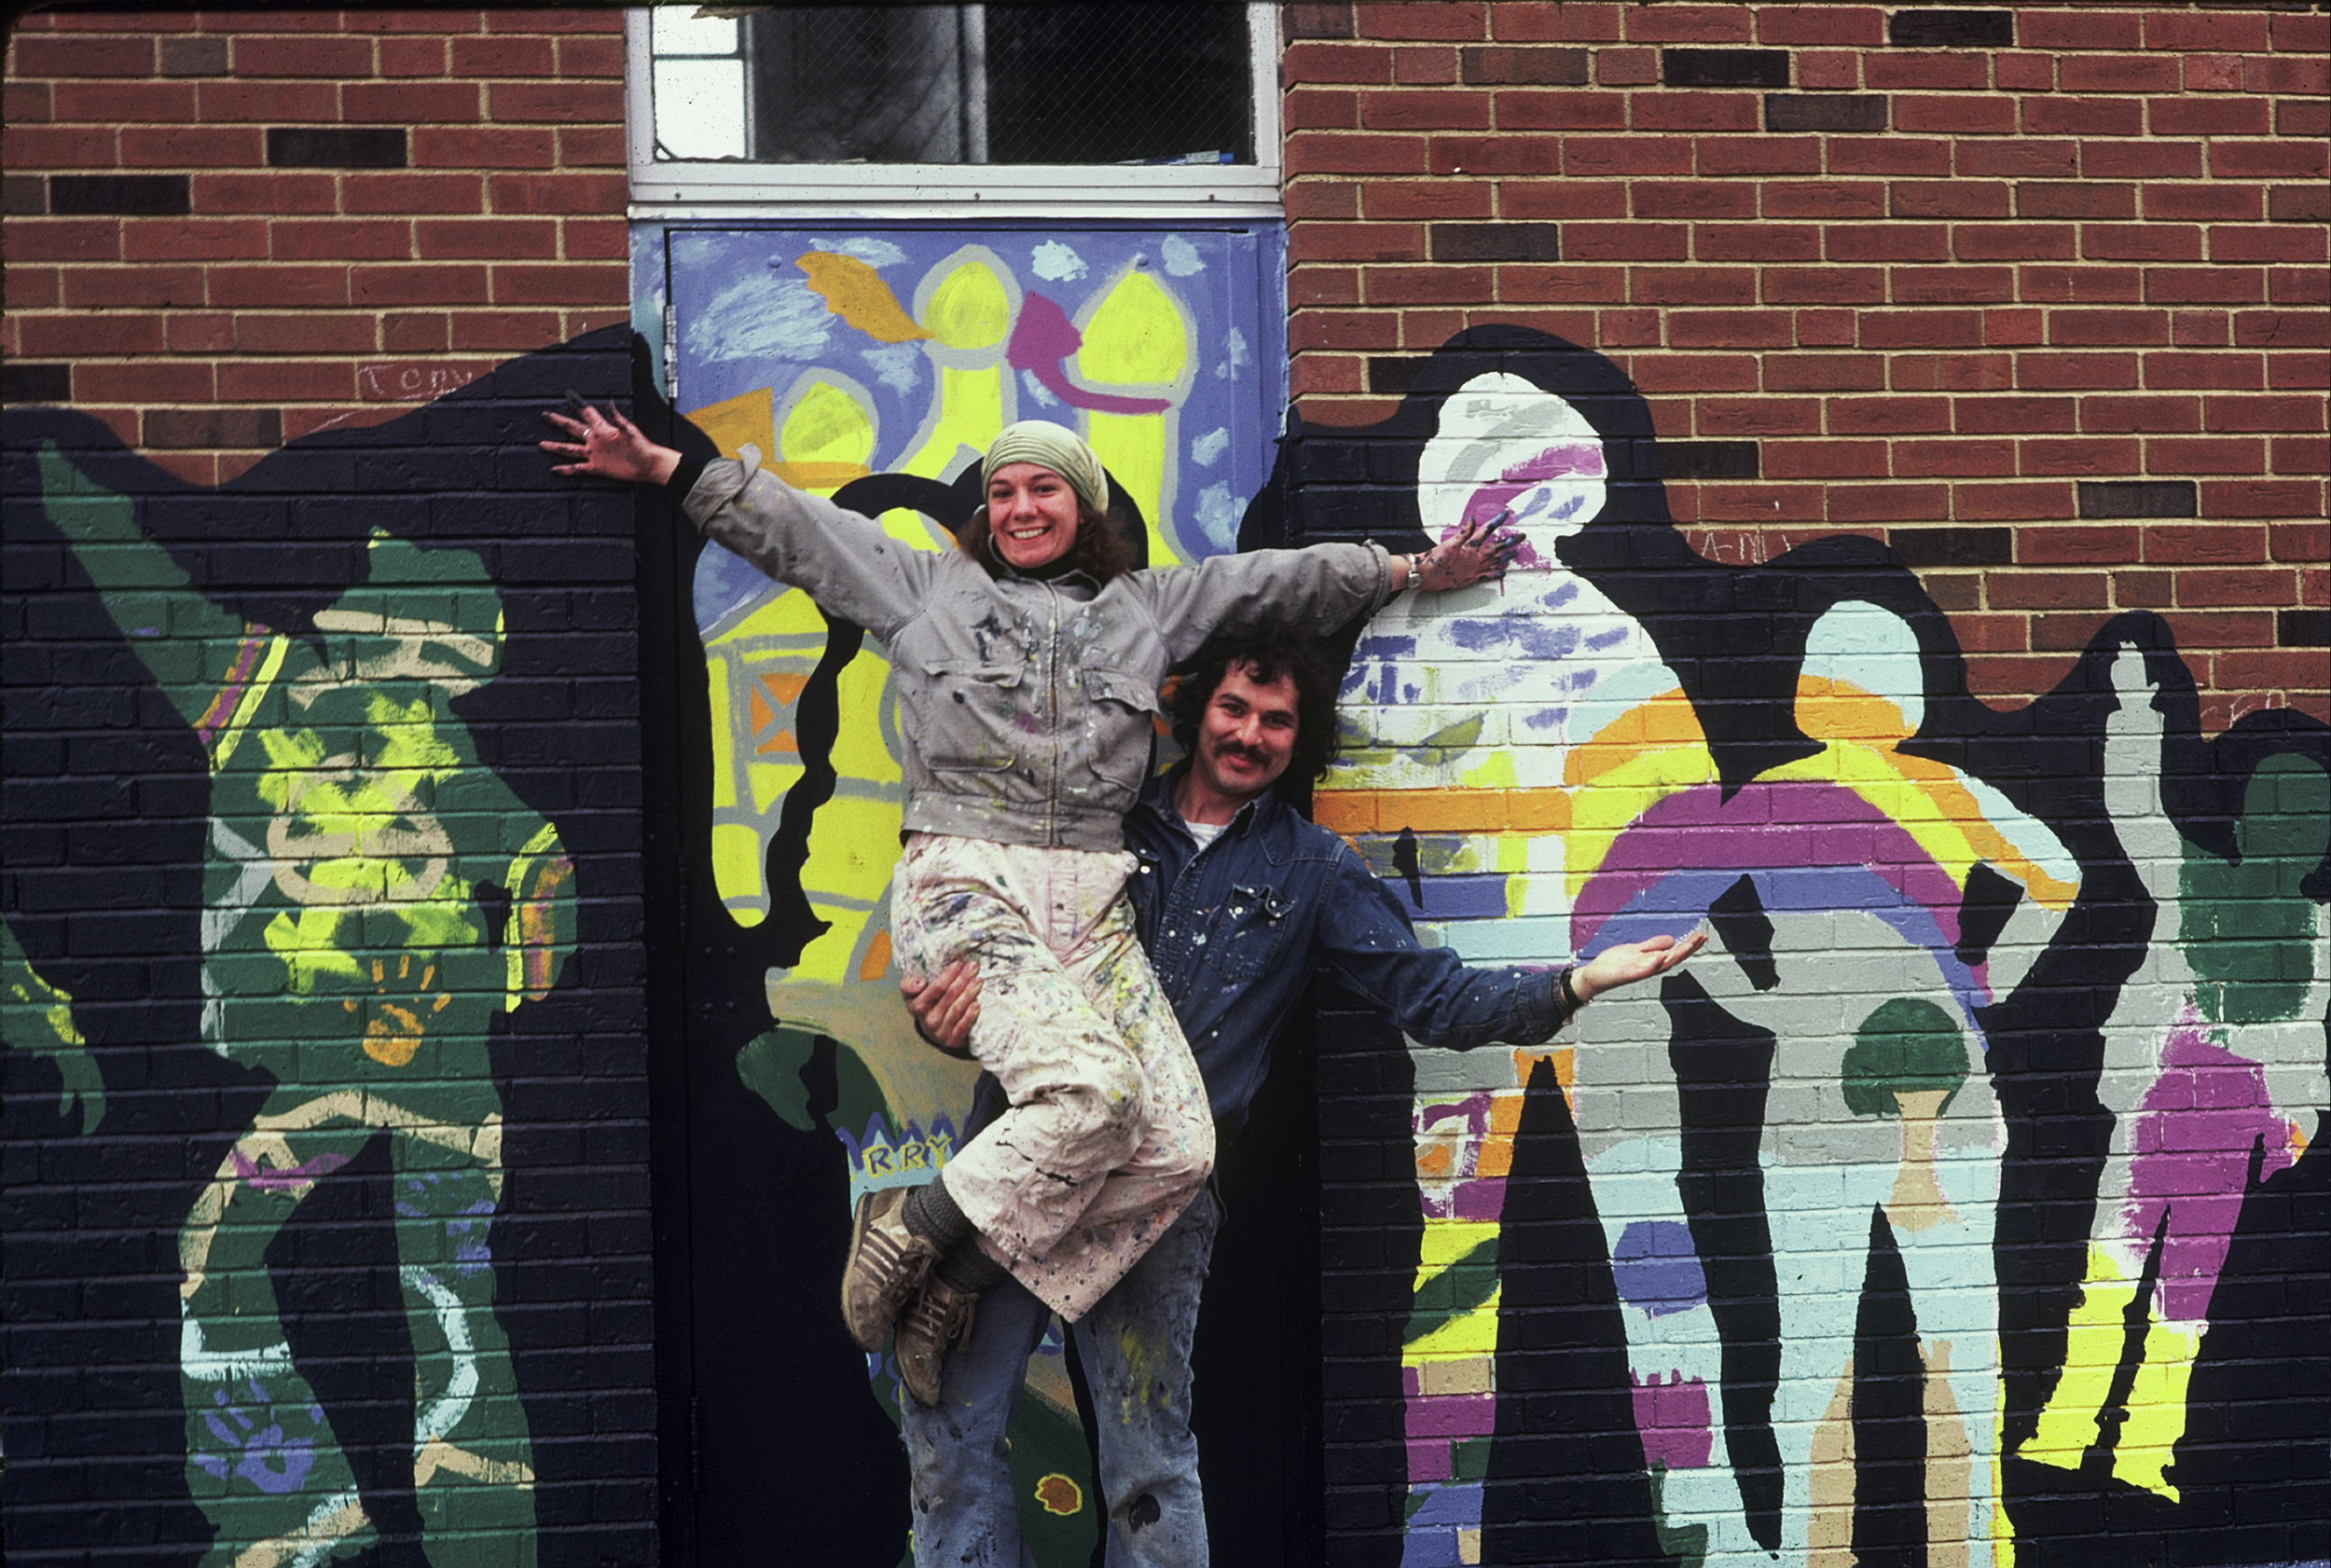 Our history… - Since forming ON THE WALL PRODUCTIONS, INC. in 1974, mural artists Robert Fishbone and Sarah Linquist (1951-2010) made it their ongoing mission to transform anonymous walls into inspiring, meaningful and memorable artworks.